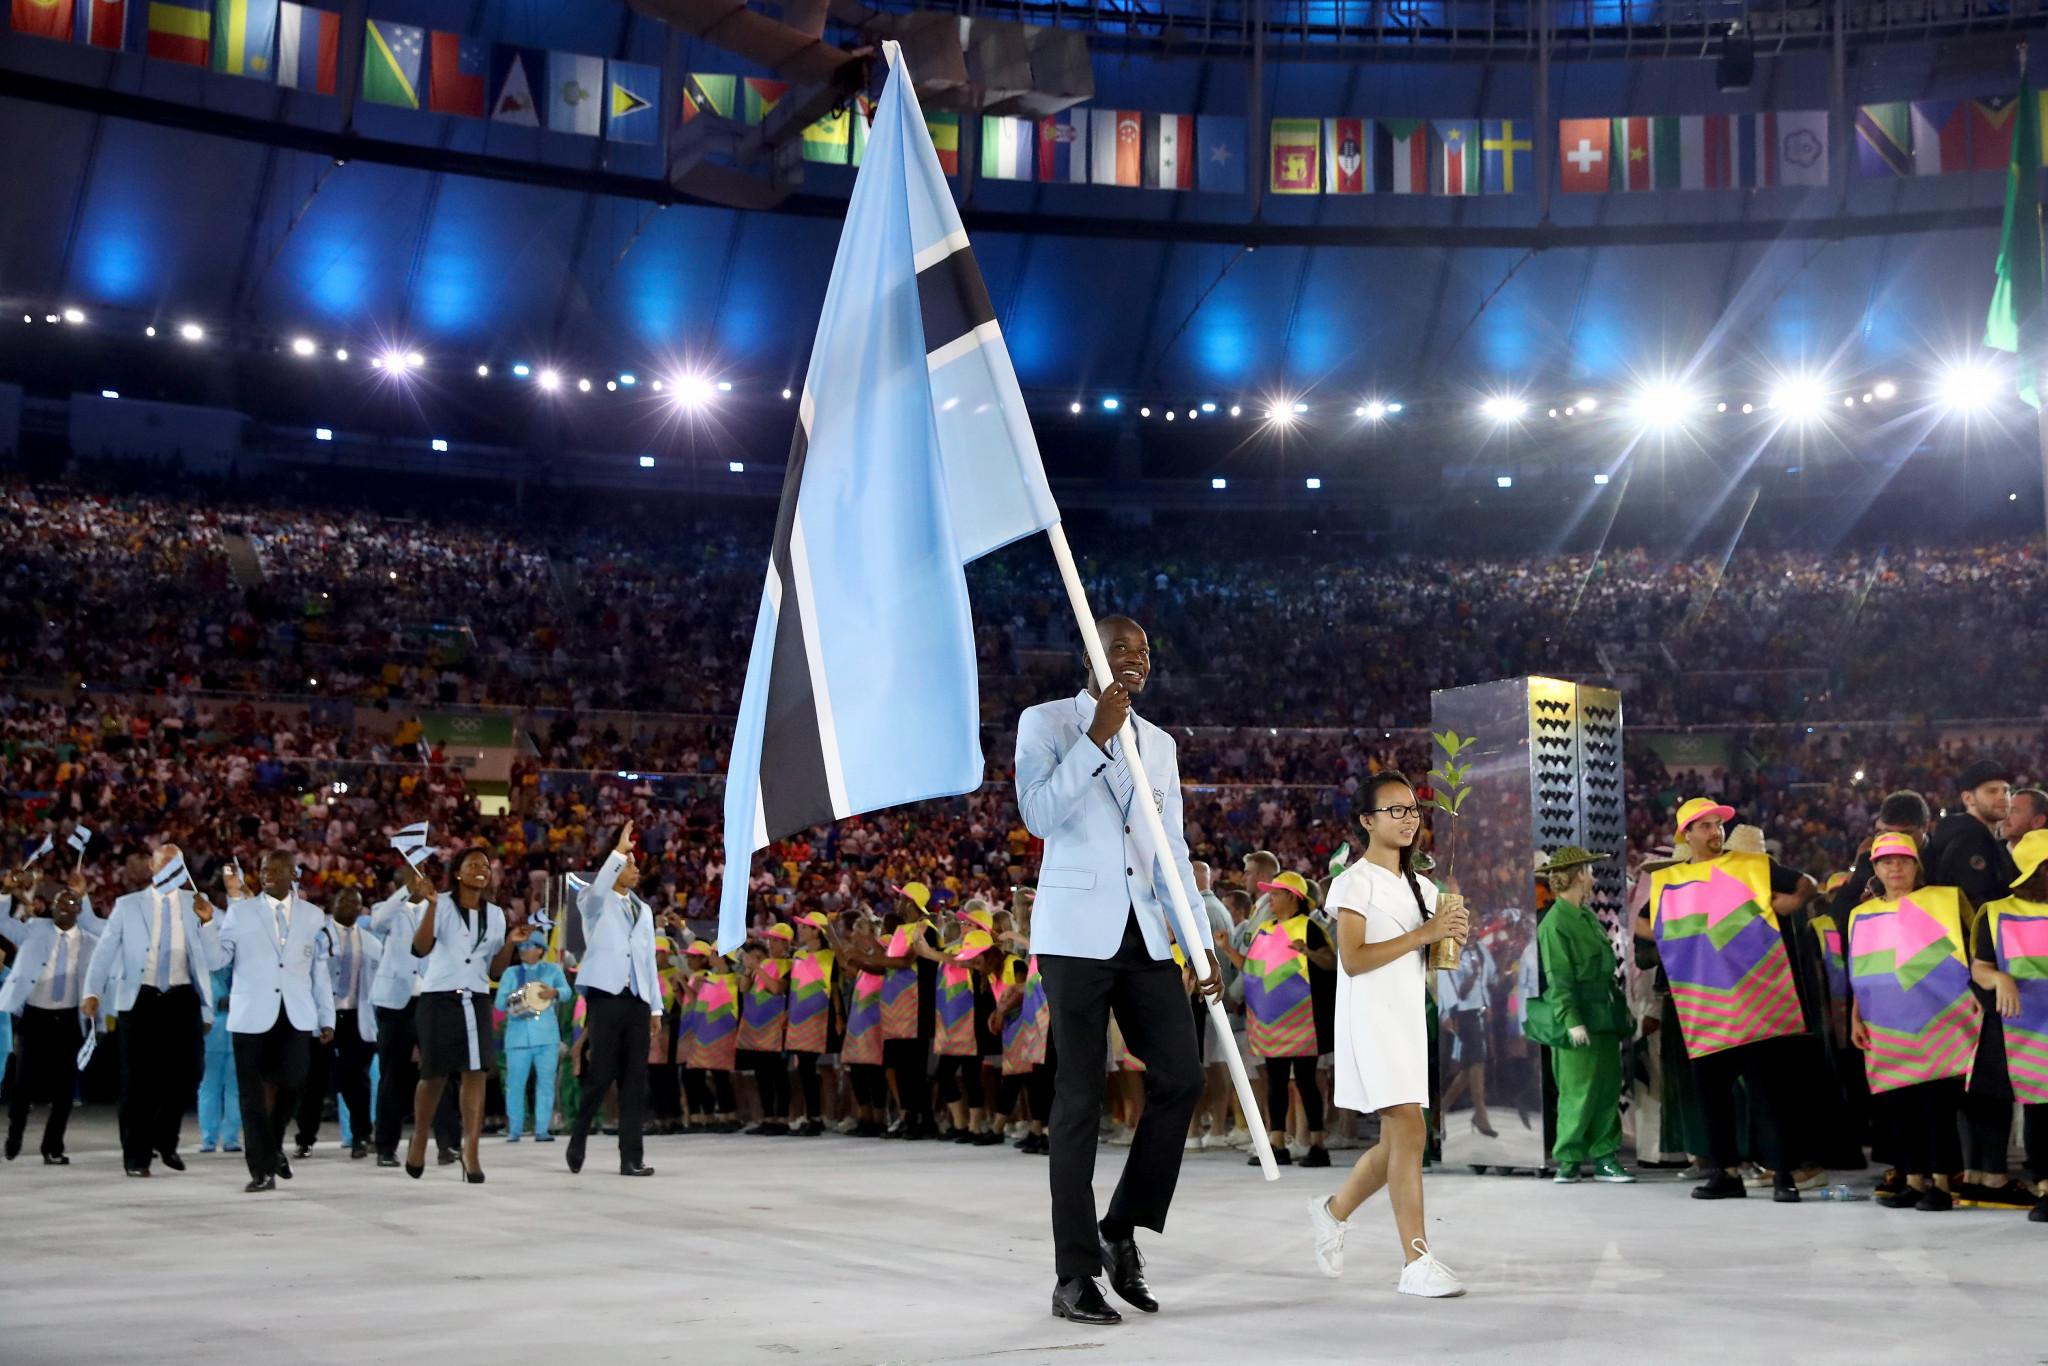 Botswana National Olympic Committee agrees sponsorship deal with mobile phone company